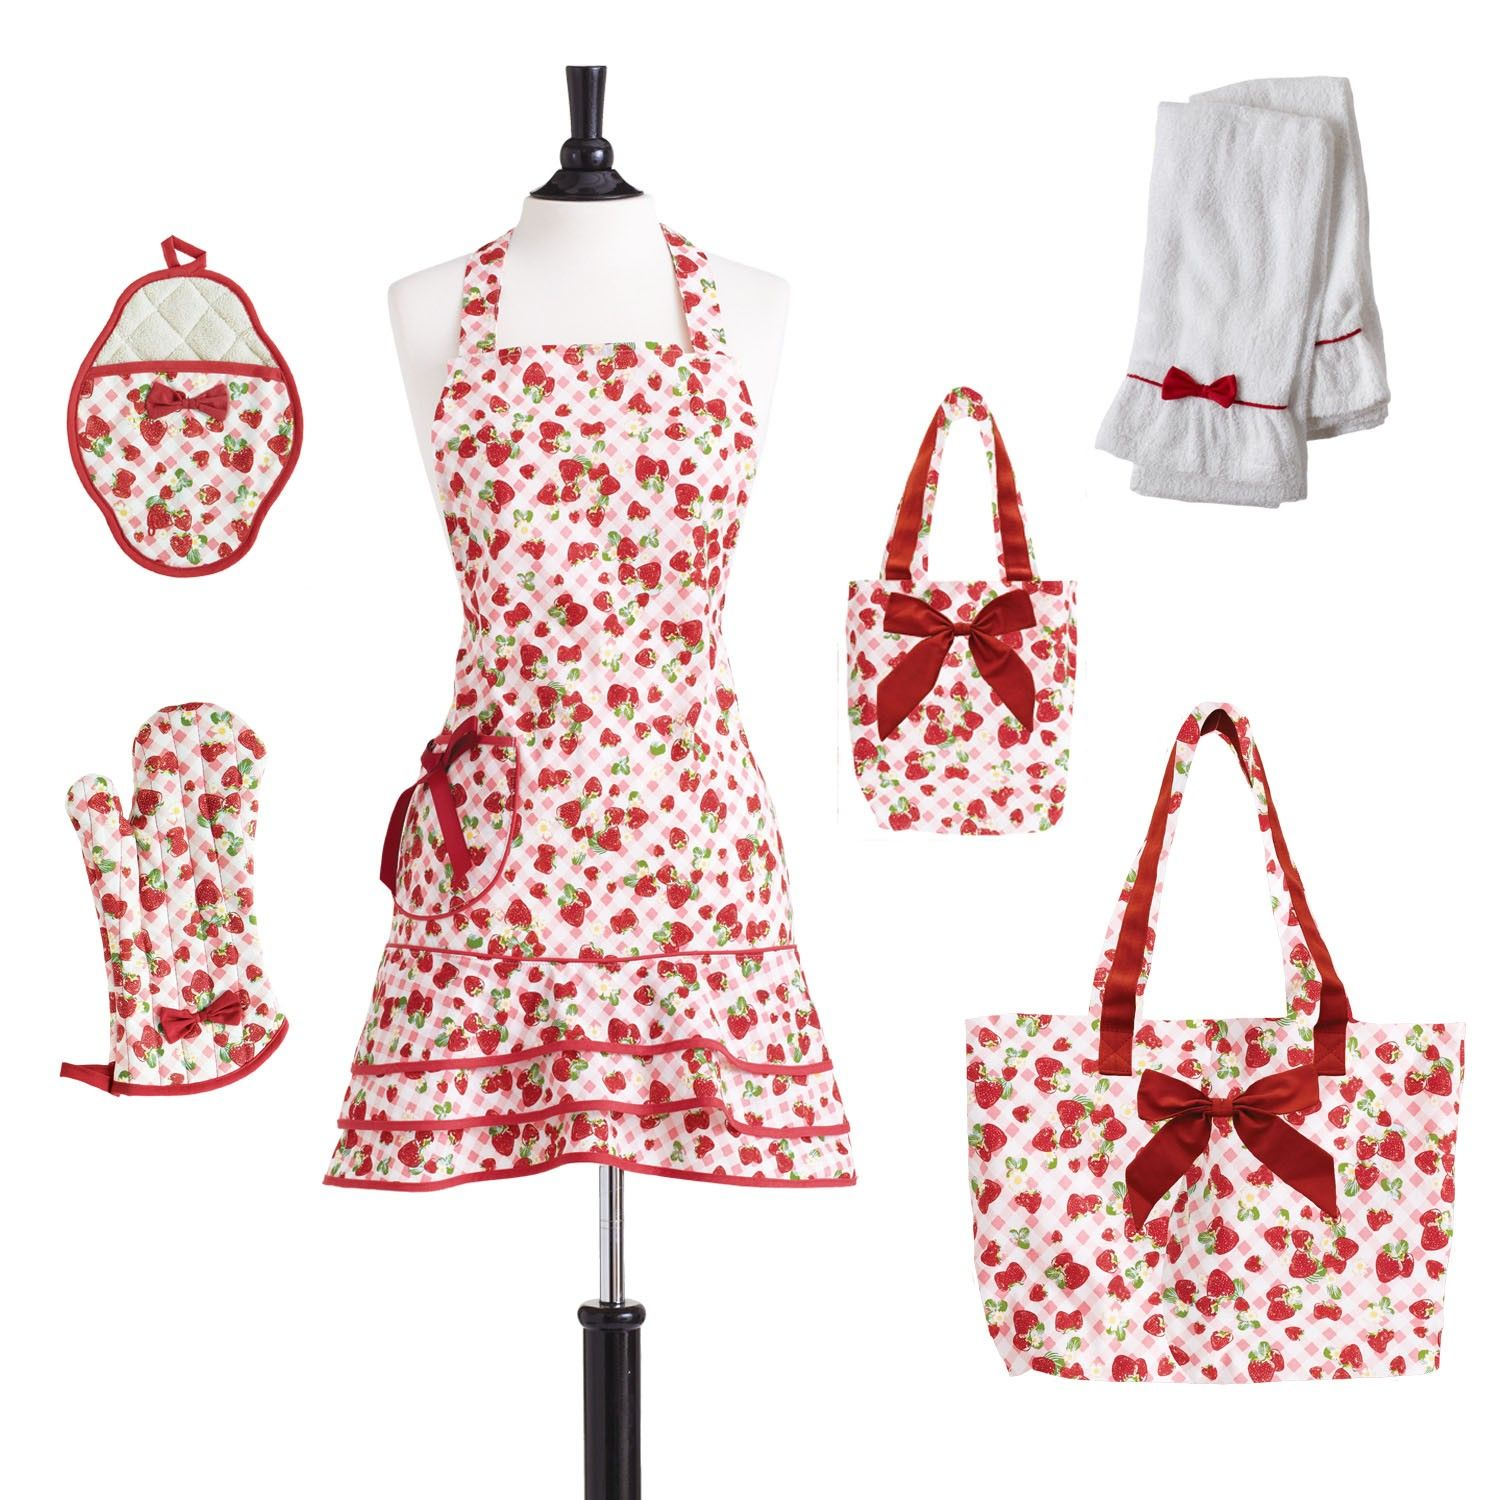 images of strawberry aprons | Strawberry Gingham Apron Collection • Jessie Steele